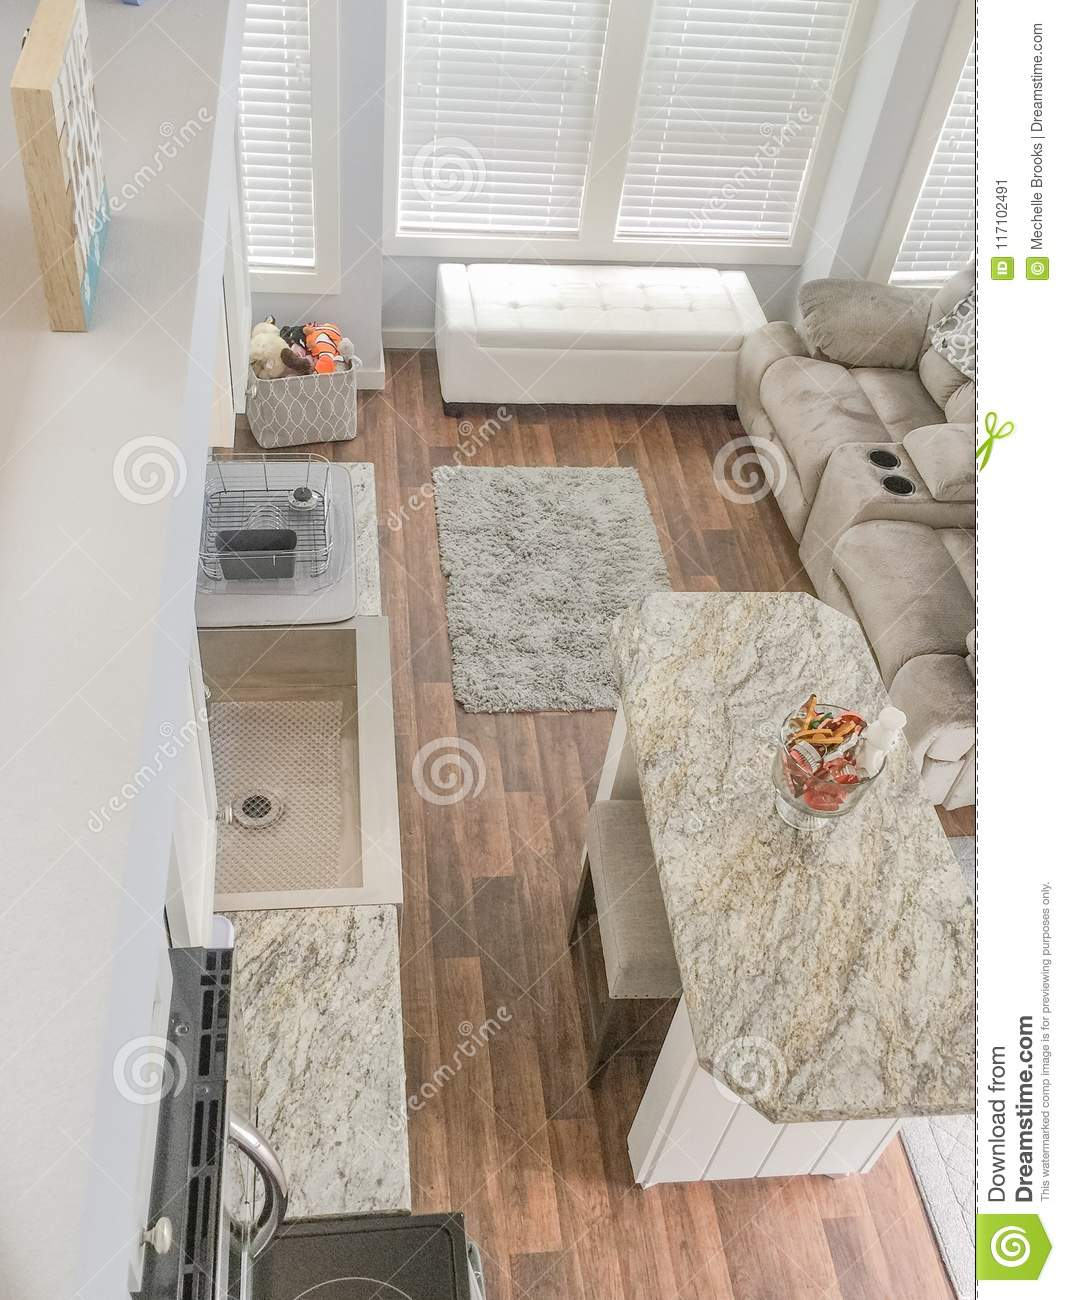 Tiny House Living And Kitchen Area Stock Image Image Of